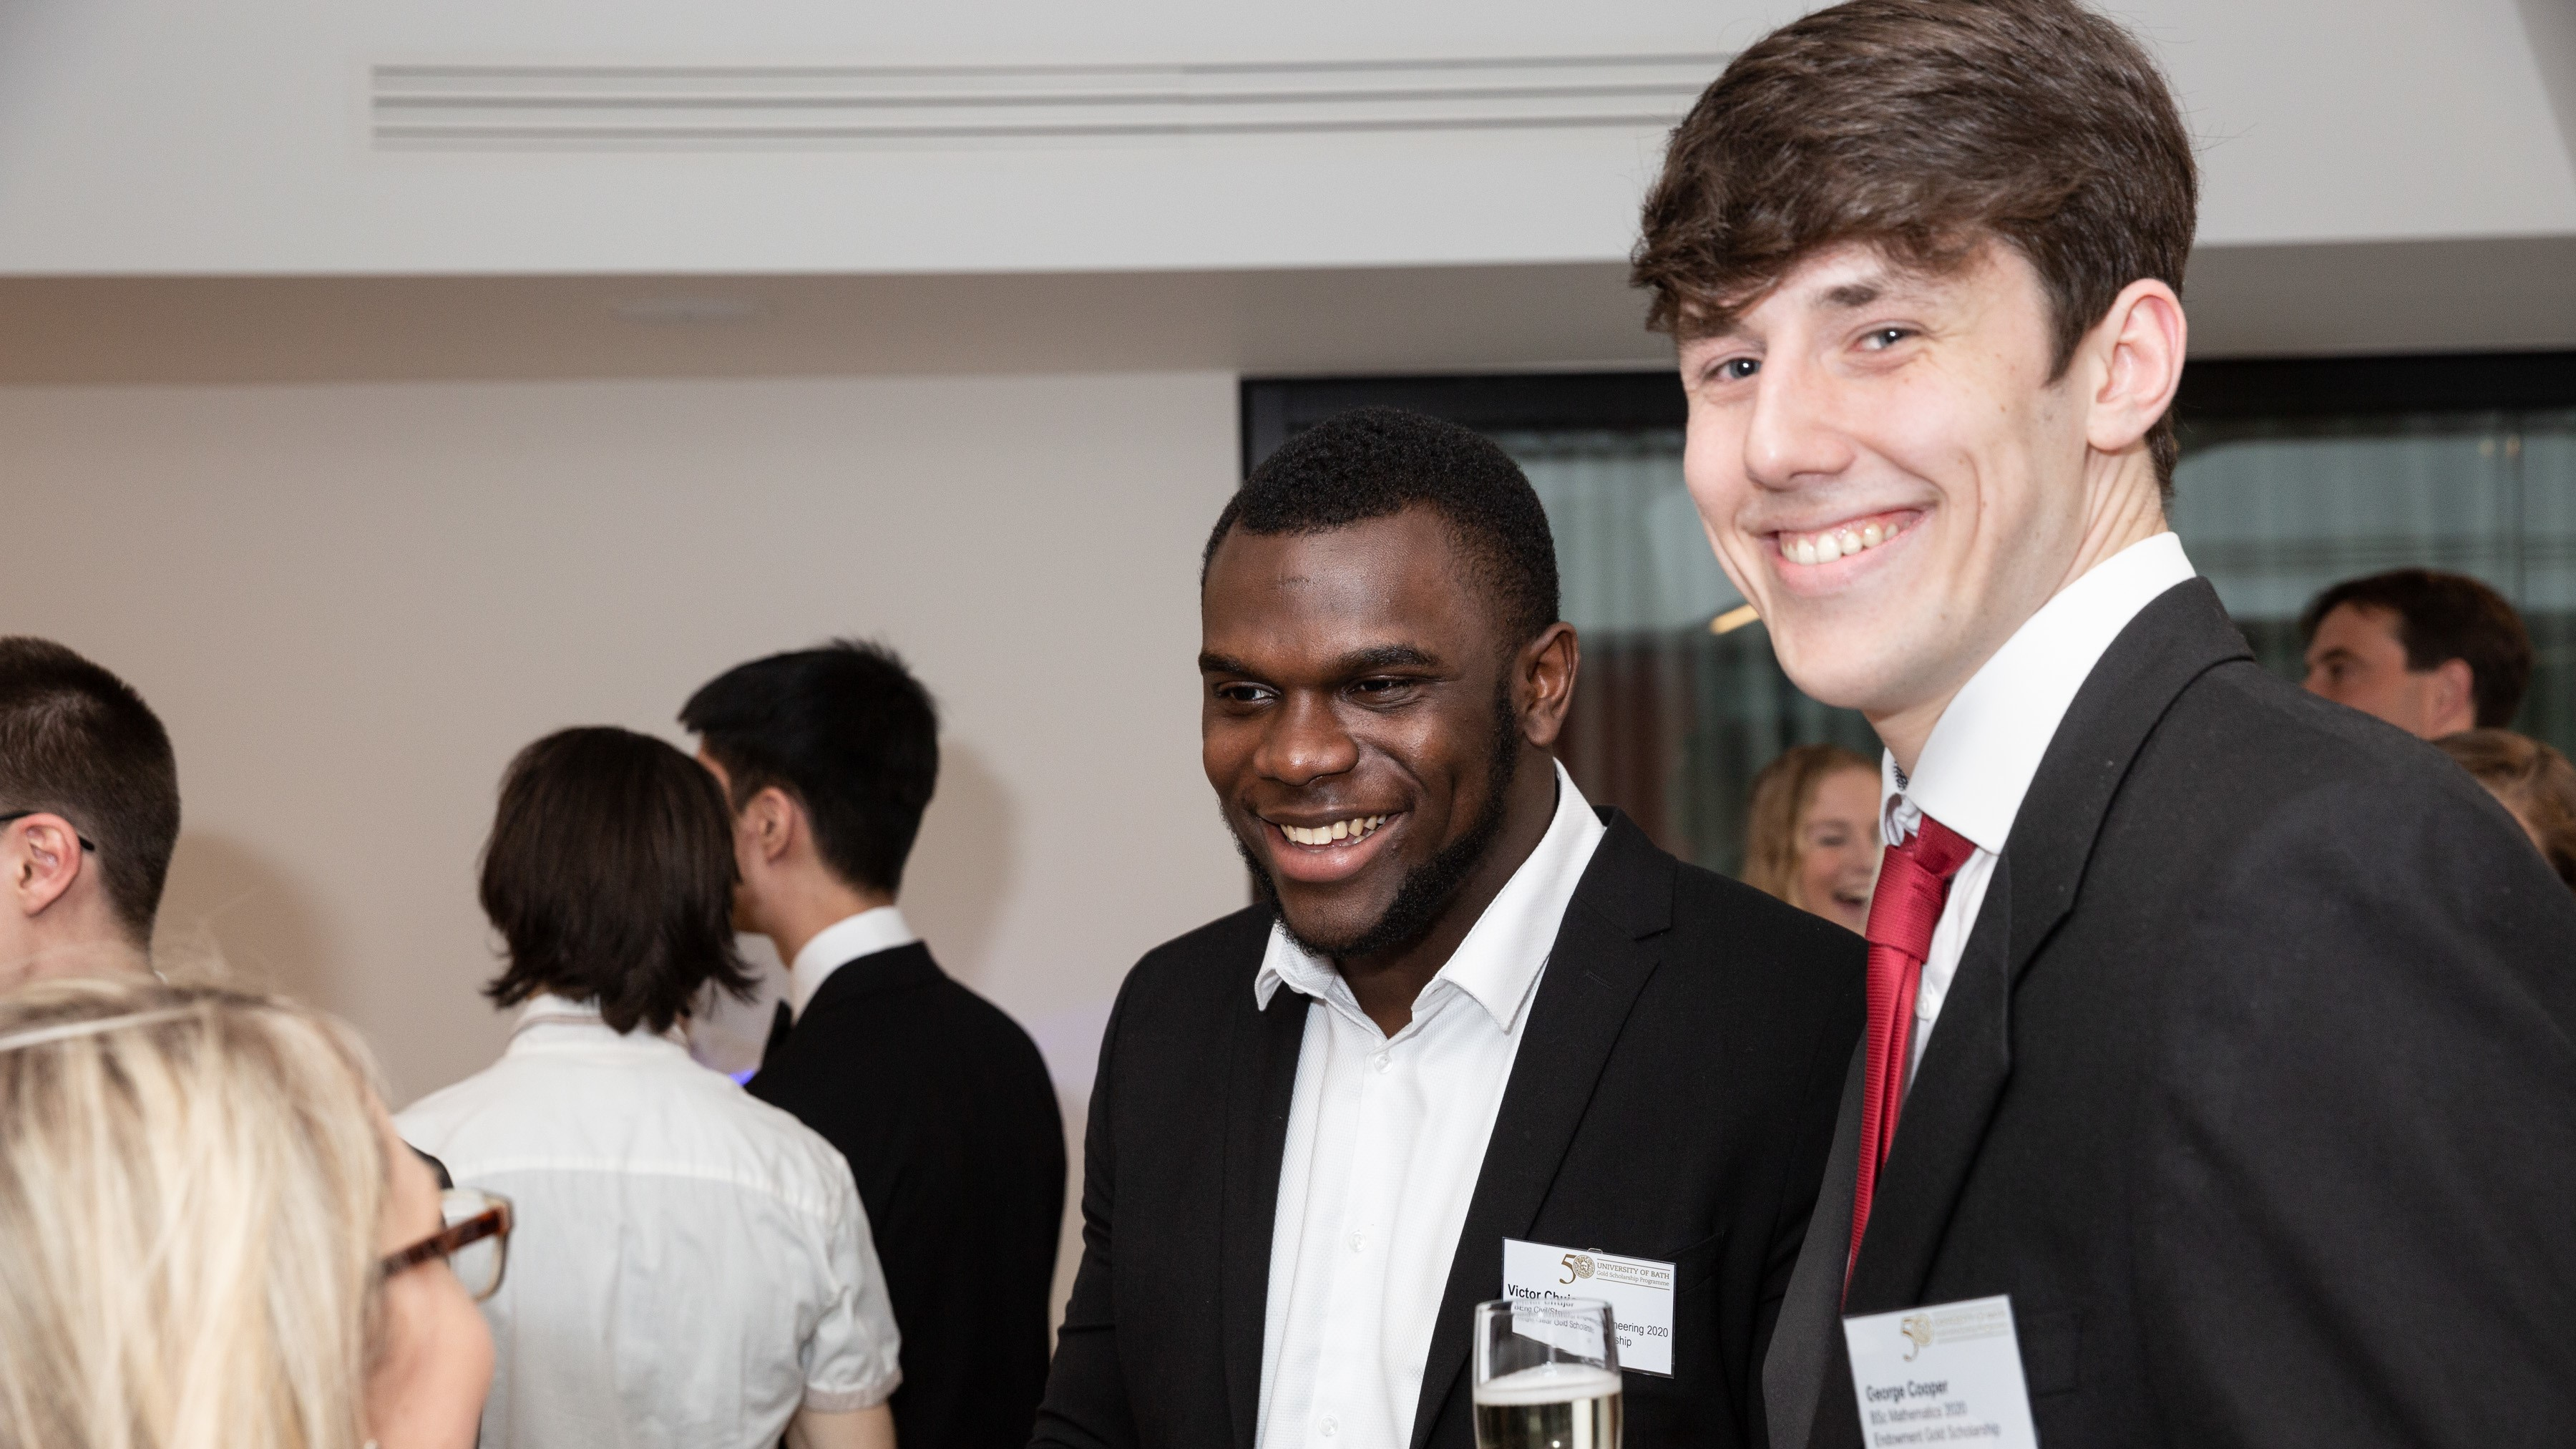 George with another scholar at a networking event